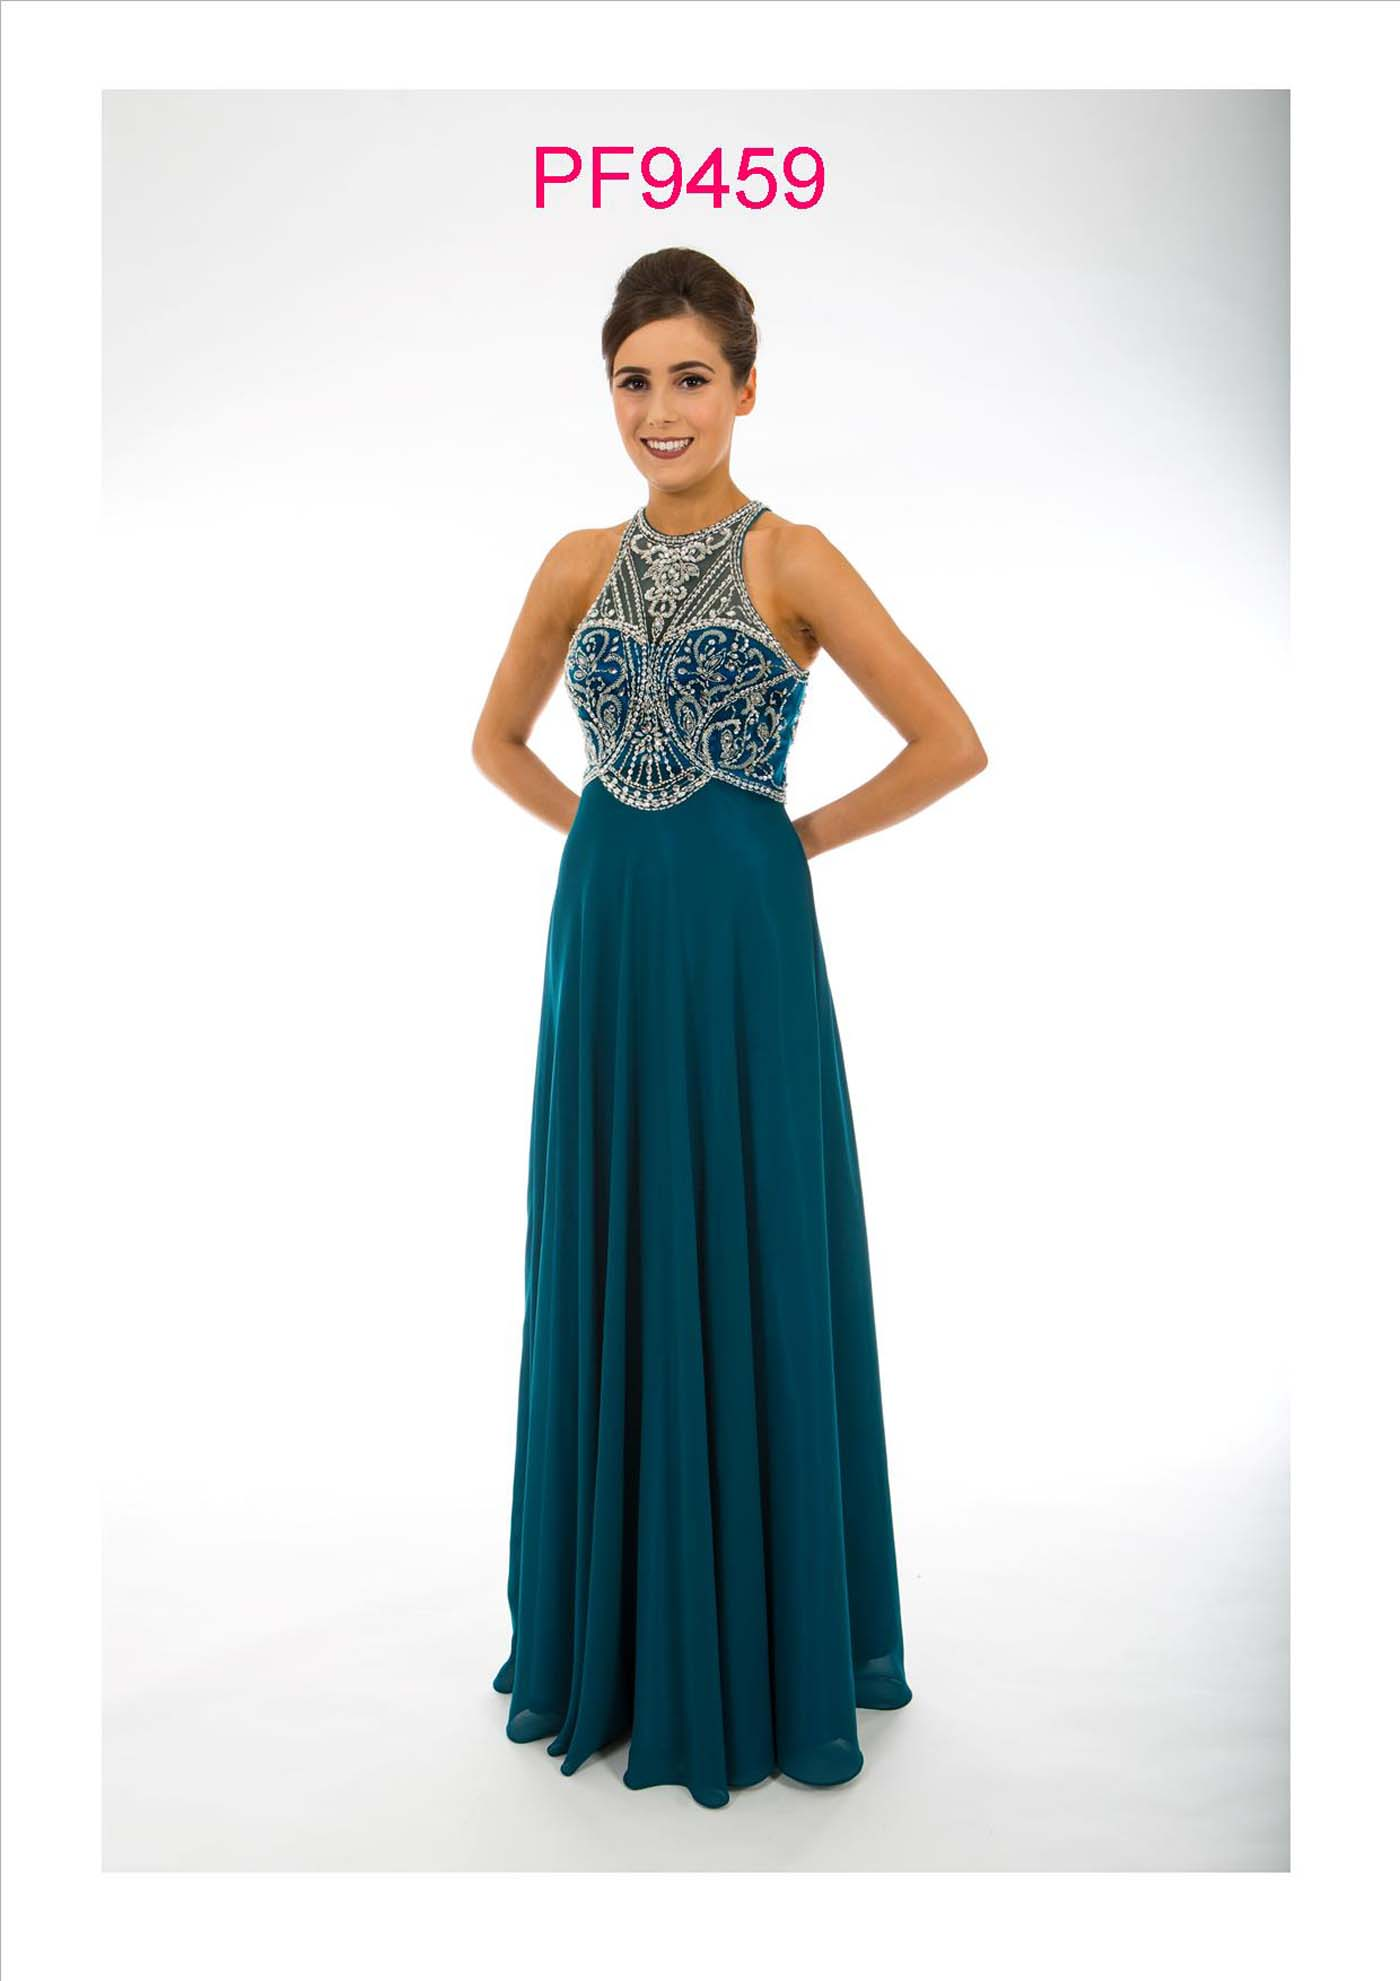 Prom girl wearing green chiffon gown with full skirt and silver beaded bodice